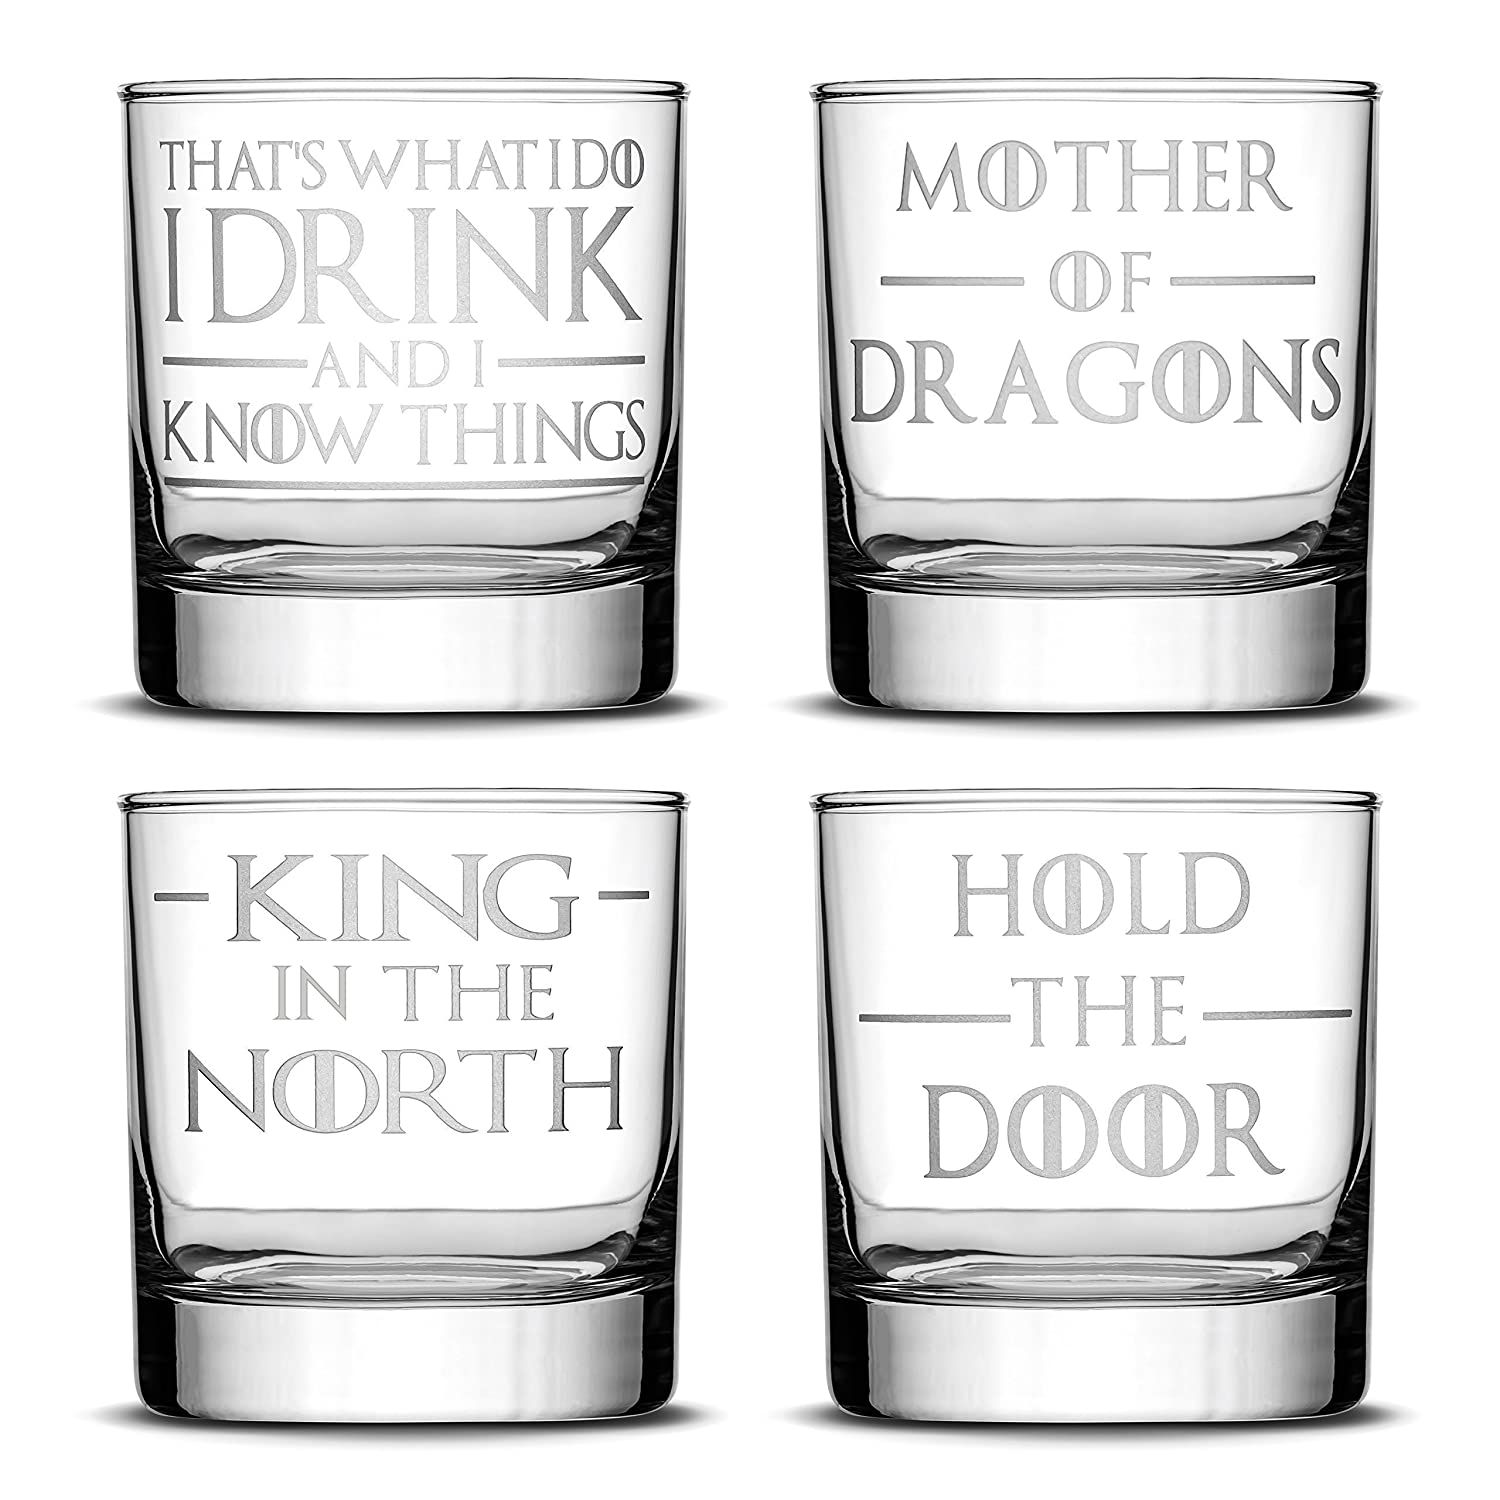 Amazon Com Integrity Bottles Set Of 4 Premium Game Of Thrones Whiskey Glasses I Drink And I Know Things Mother Of Dragons King In The North Hold The Door Drinking Gifts Made In